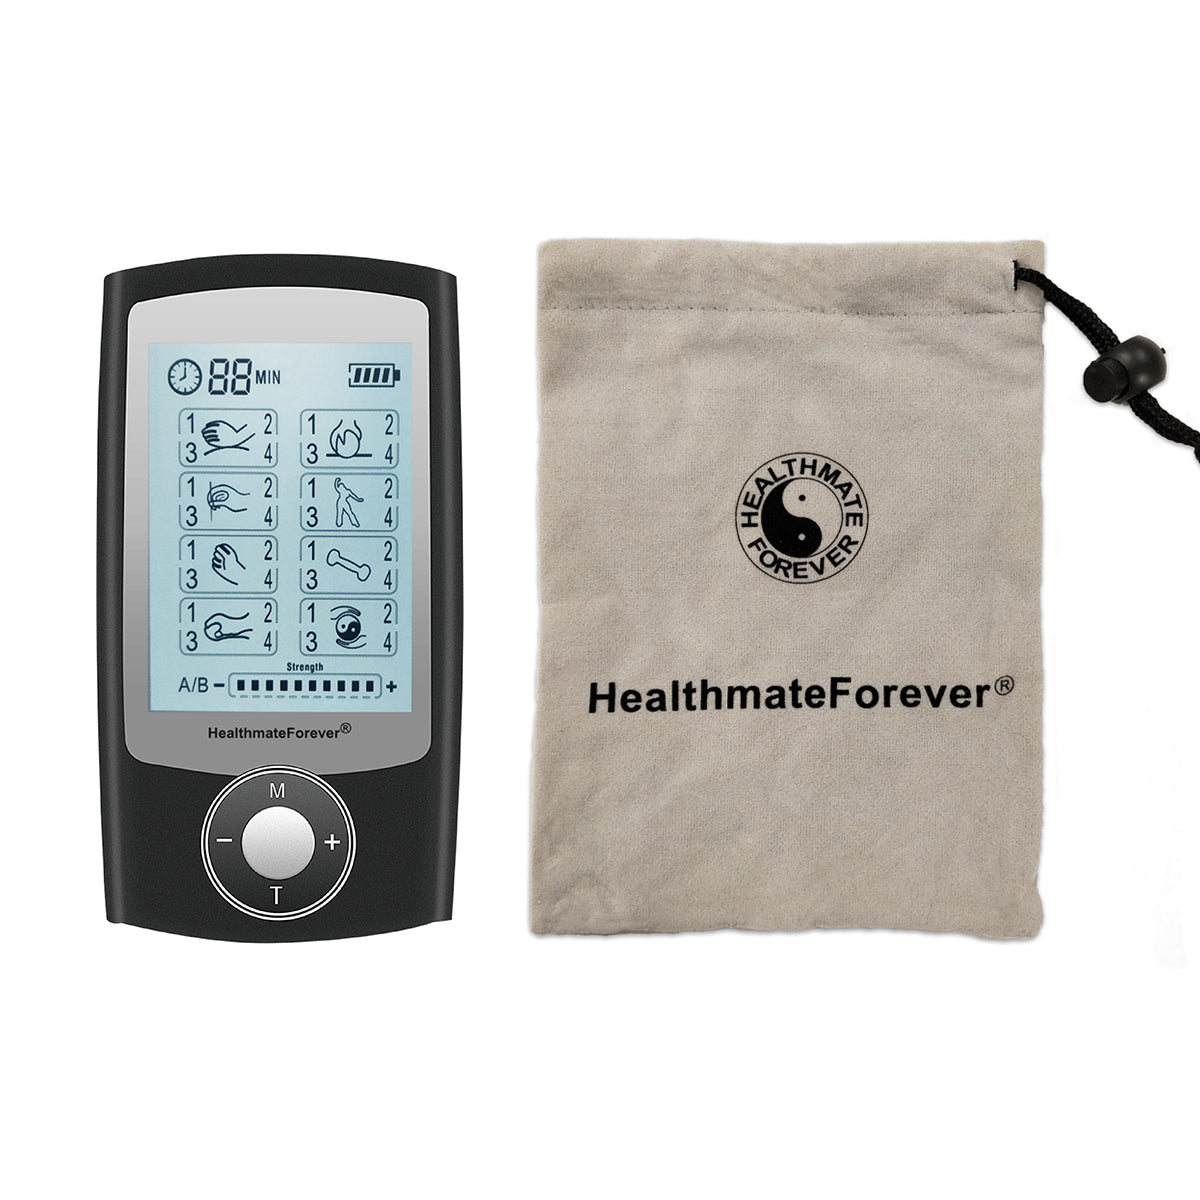 New Arrival - 2020 Version 32 Modes PRO32AB TENS Unit & Muscle Stimulator - 2 Year Warranty - HealthmateForever